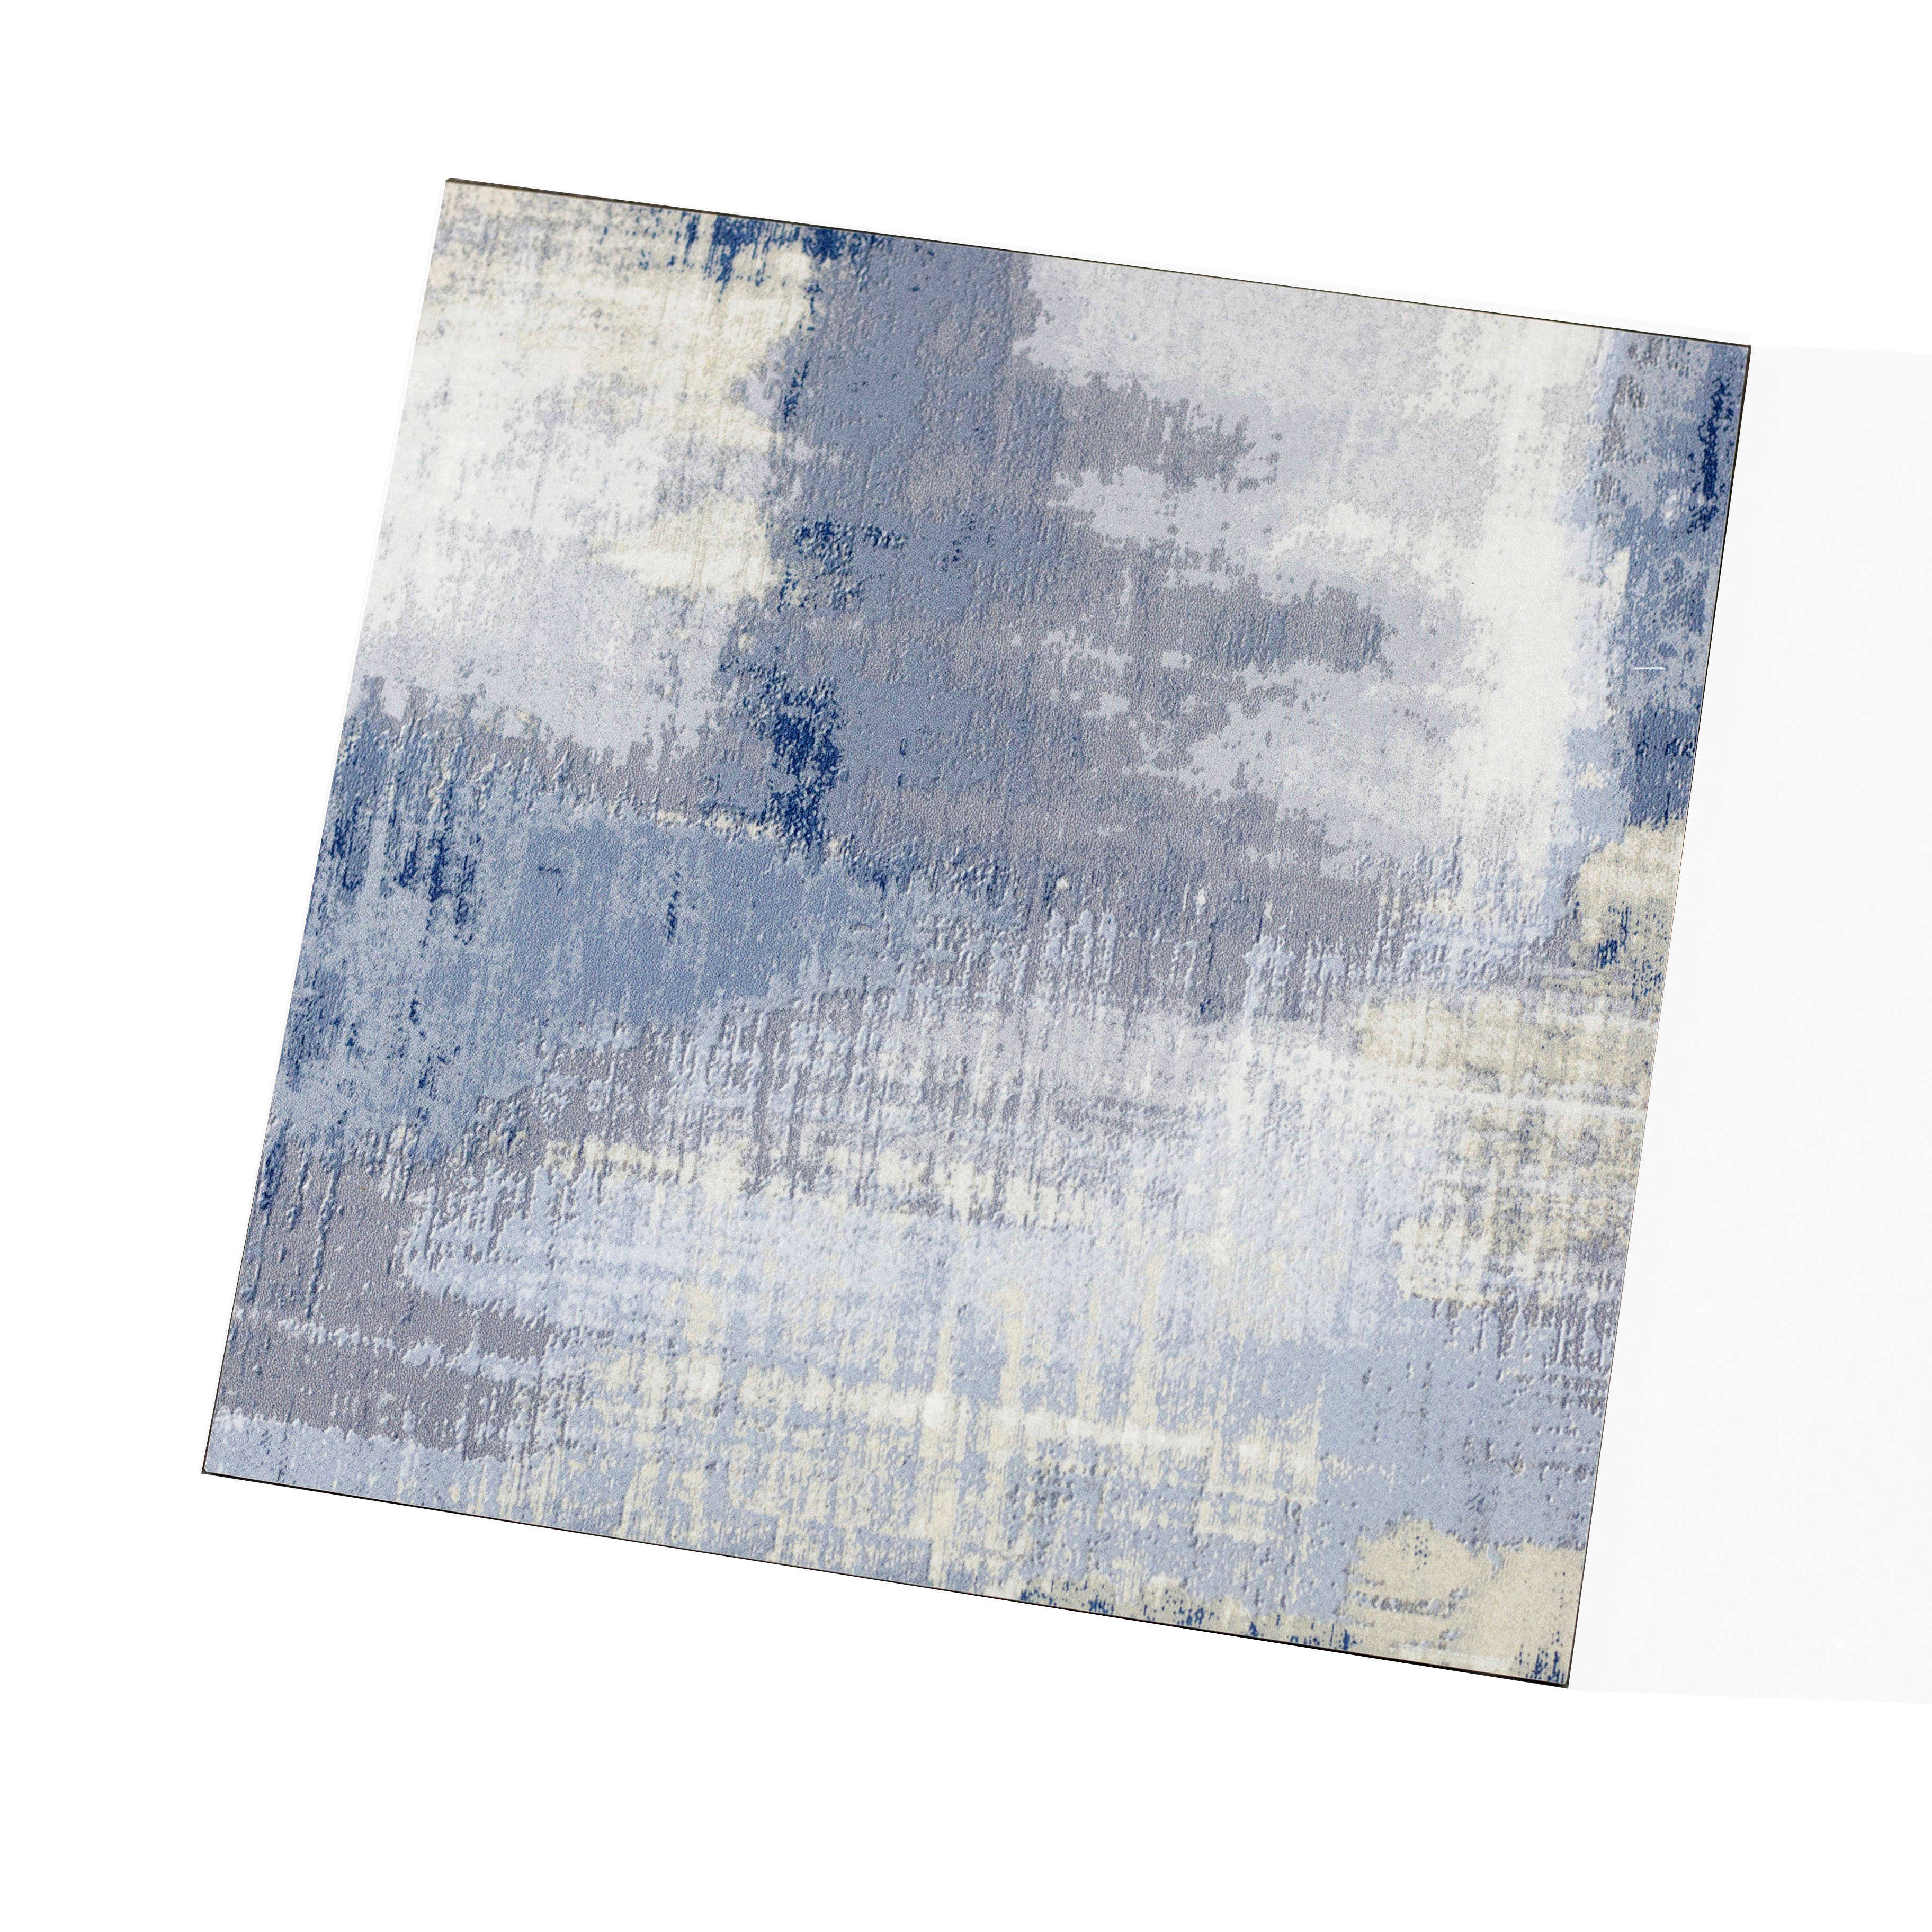 Abolos- Nature 8' x 8' Glass Subway Tile in Cement Blue/Gray (13.33sqft / 30pc Box)